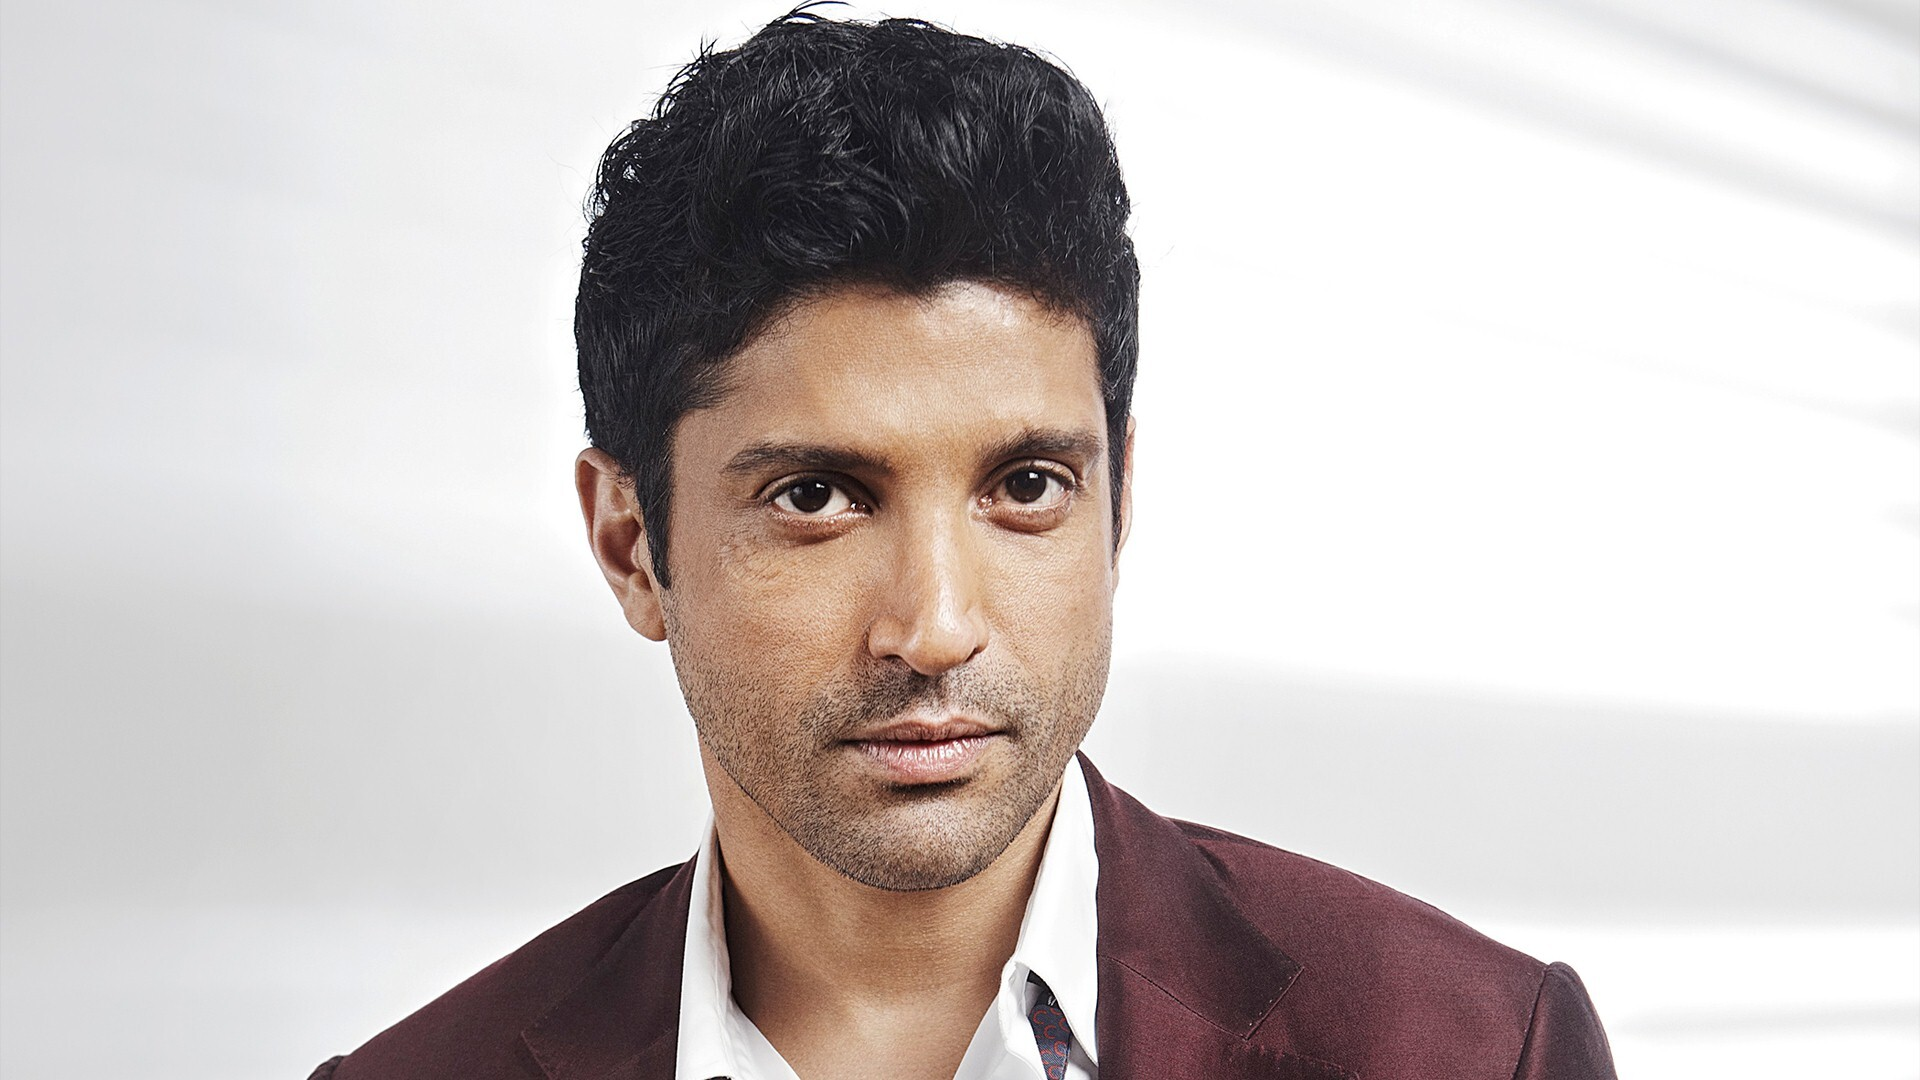 Actors Wallpapers Download Free: Farhan Akhtar Bollywood Actor HD Wallpapers HD Wallpapers